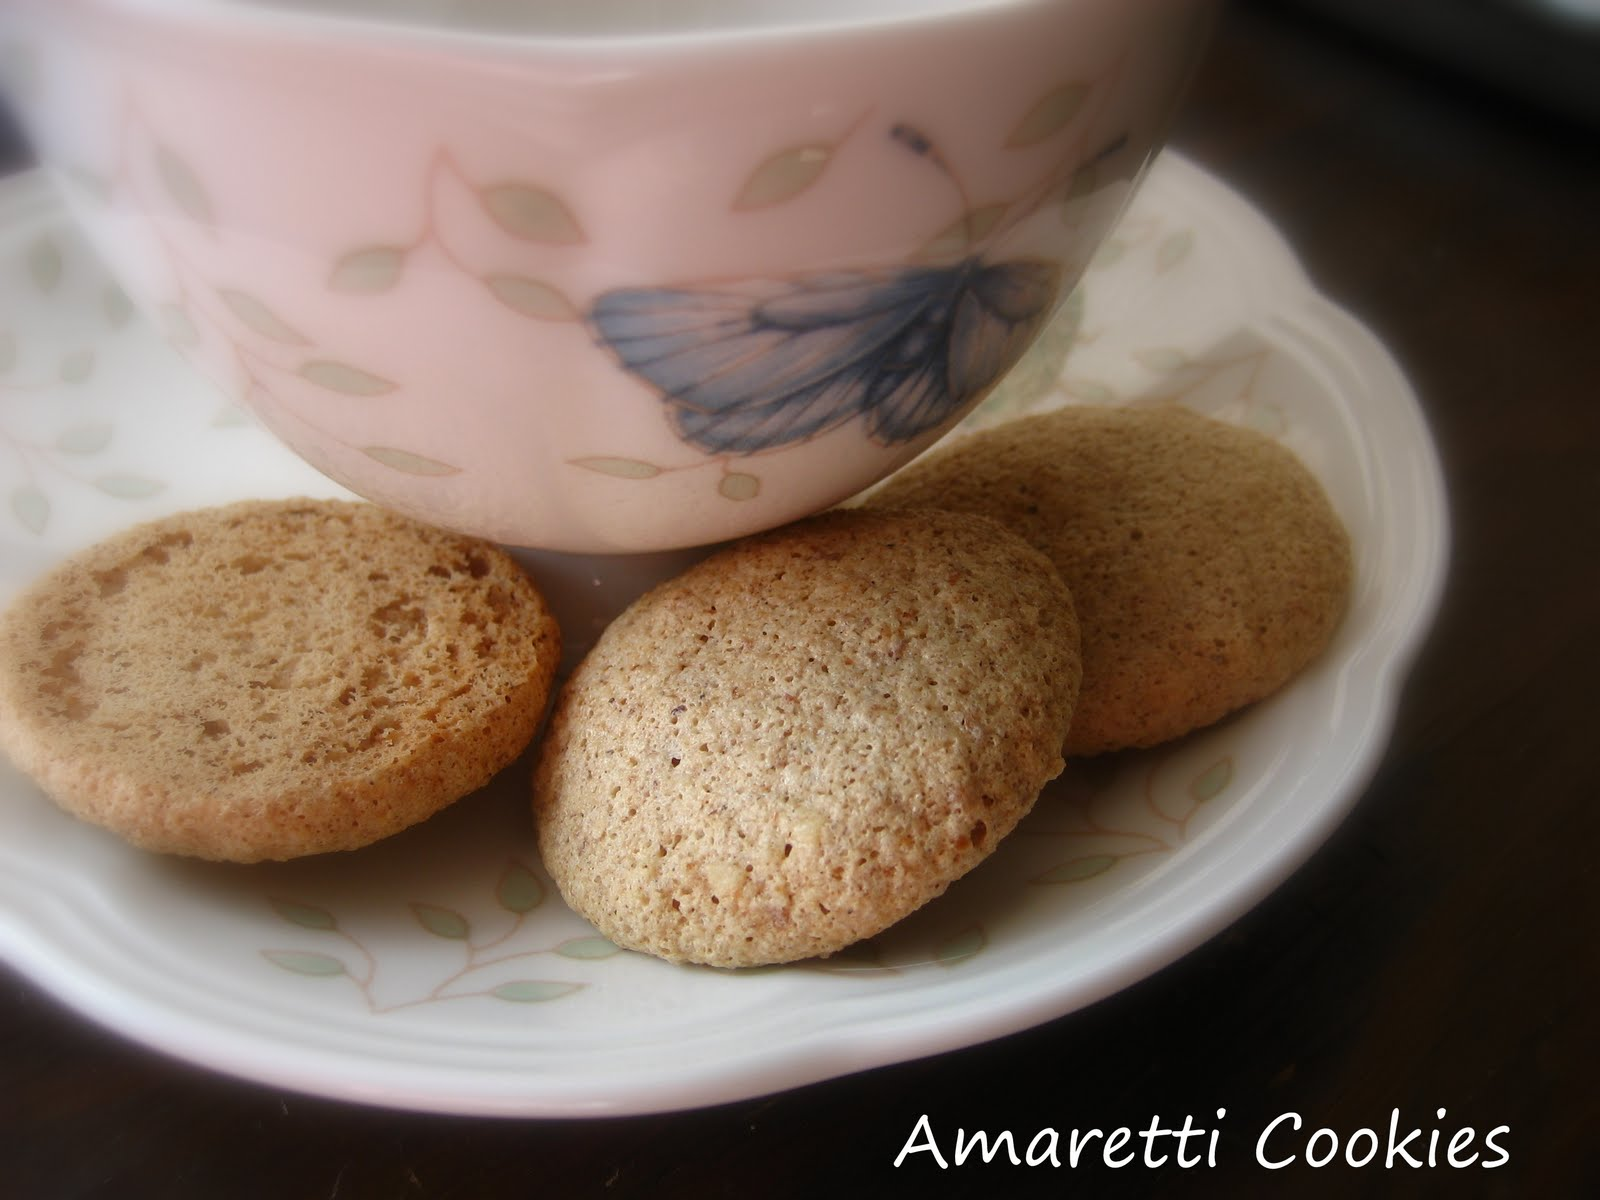 ... cookies aka ninjabread cookies lazzaroni amaretti cookie snaps world